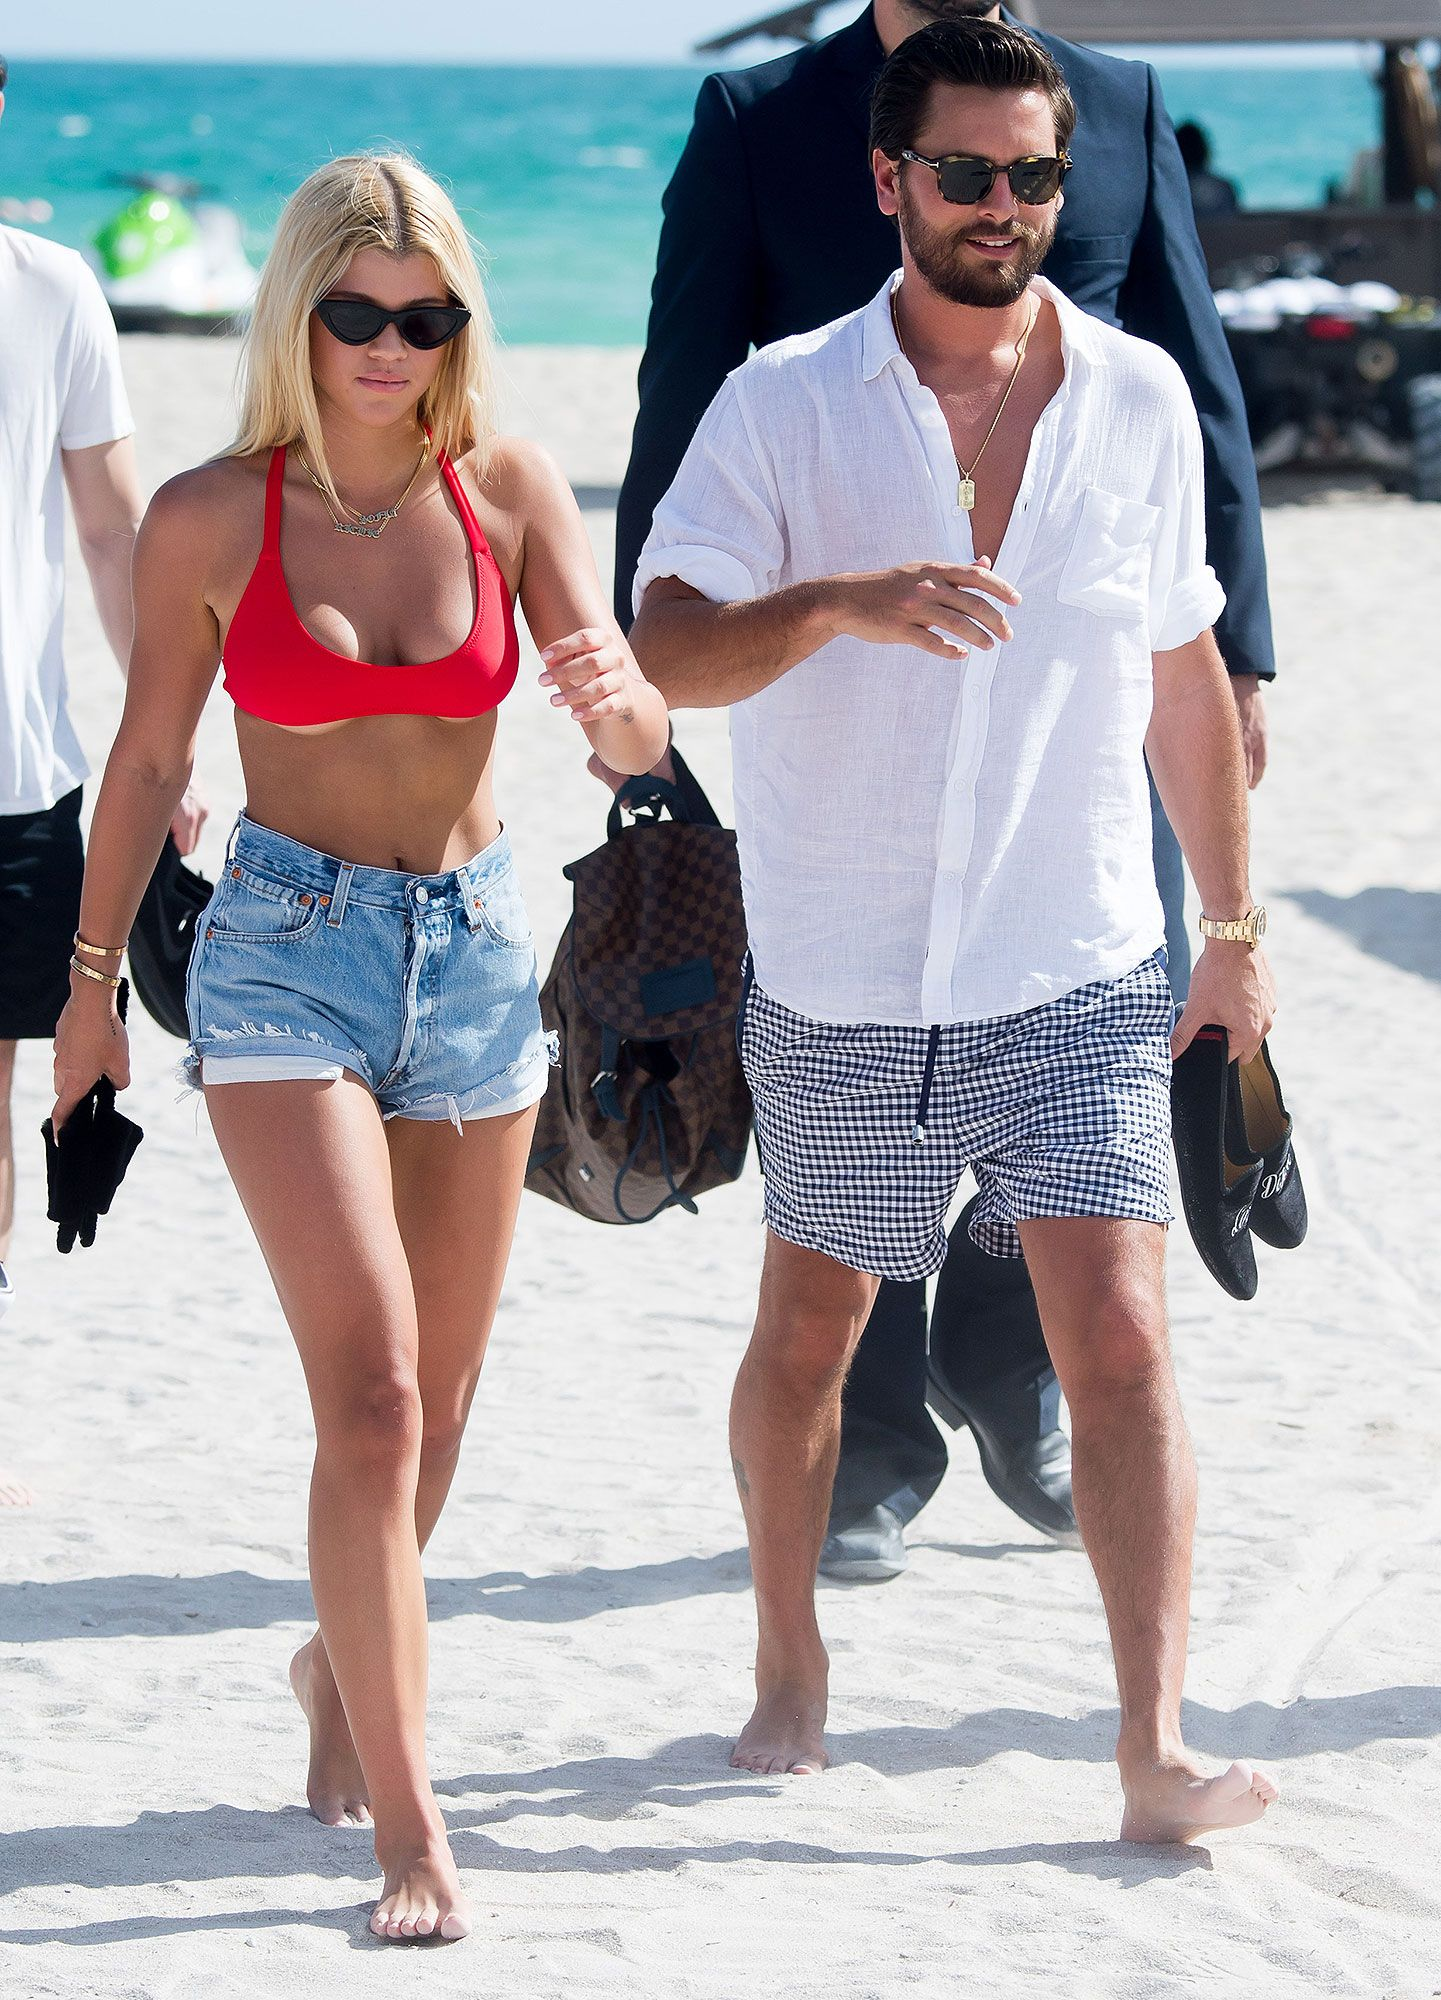 ae417d986216 Going Strong! Scott Disick and Sofia Richie Soak Up the Sun in Miami ...